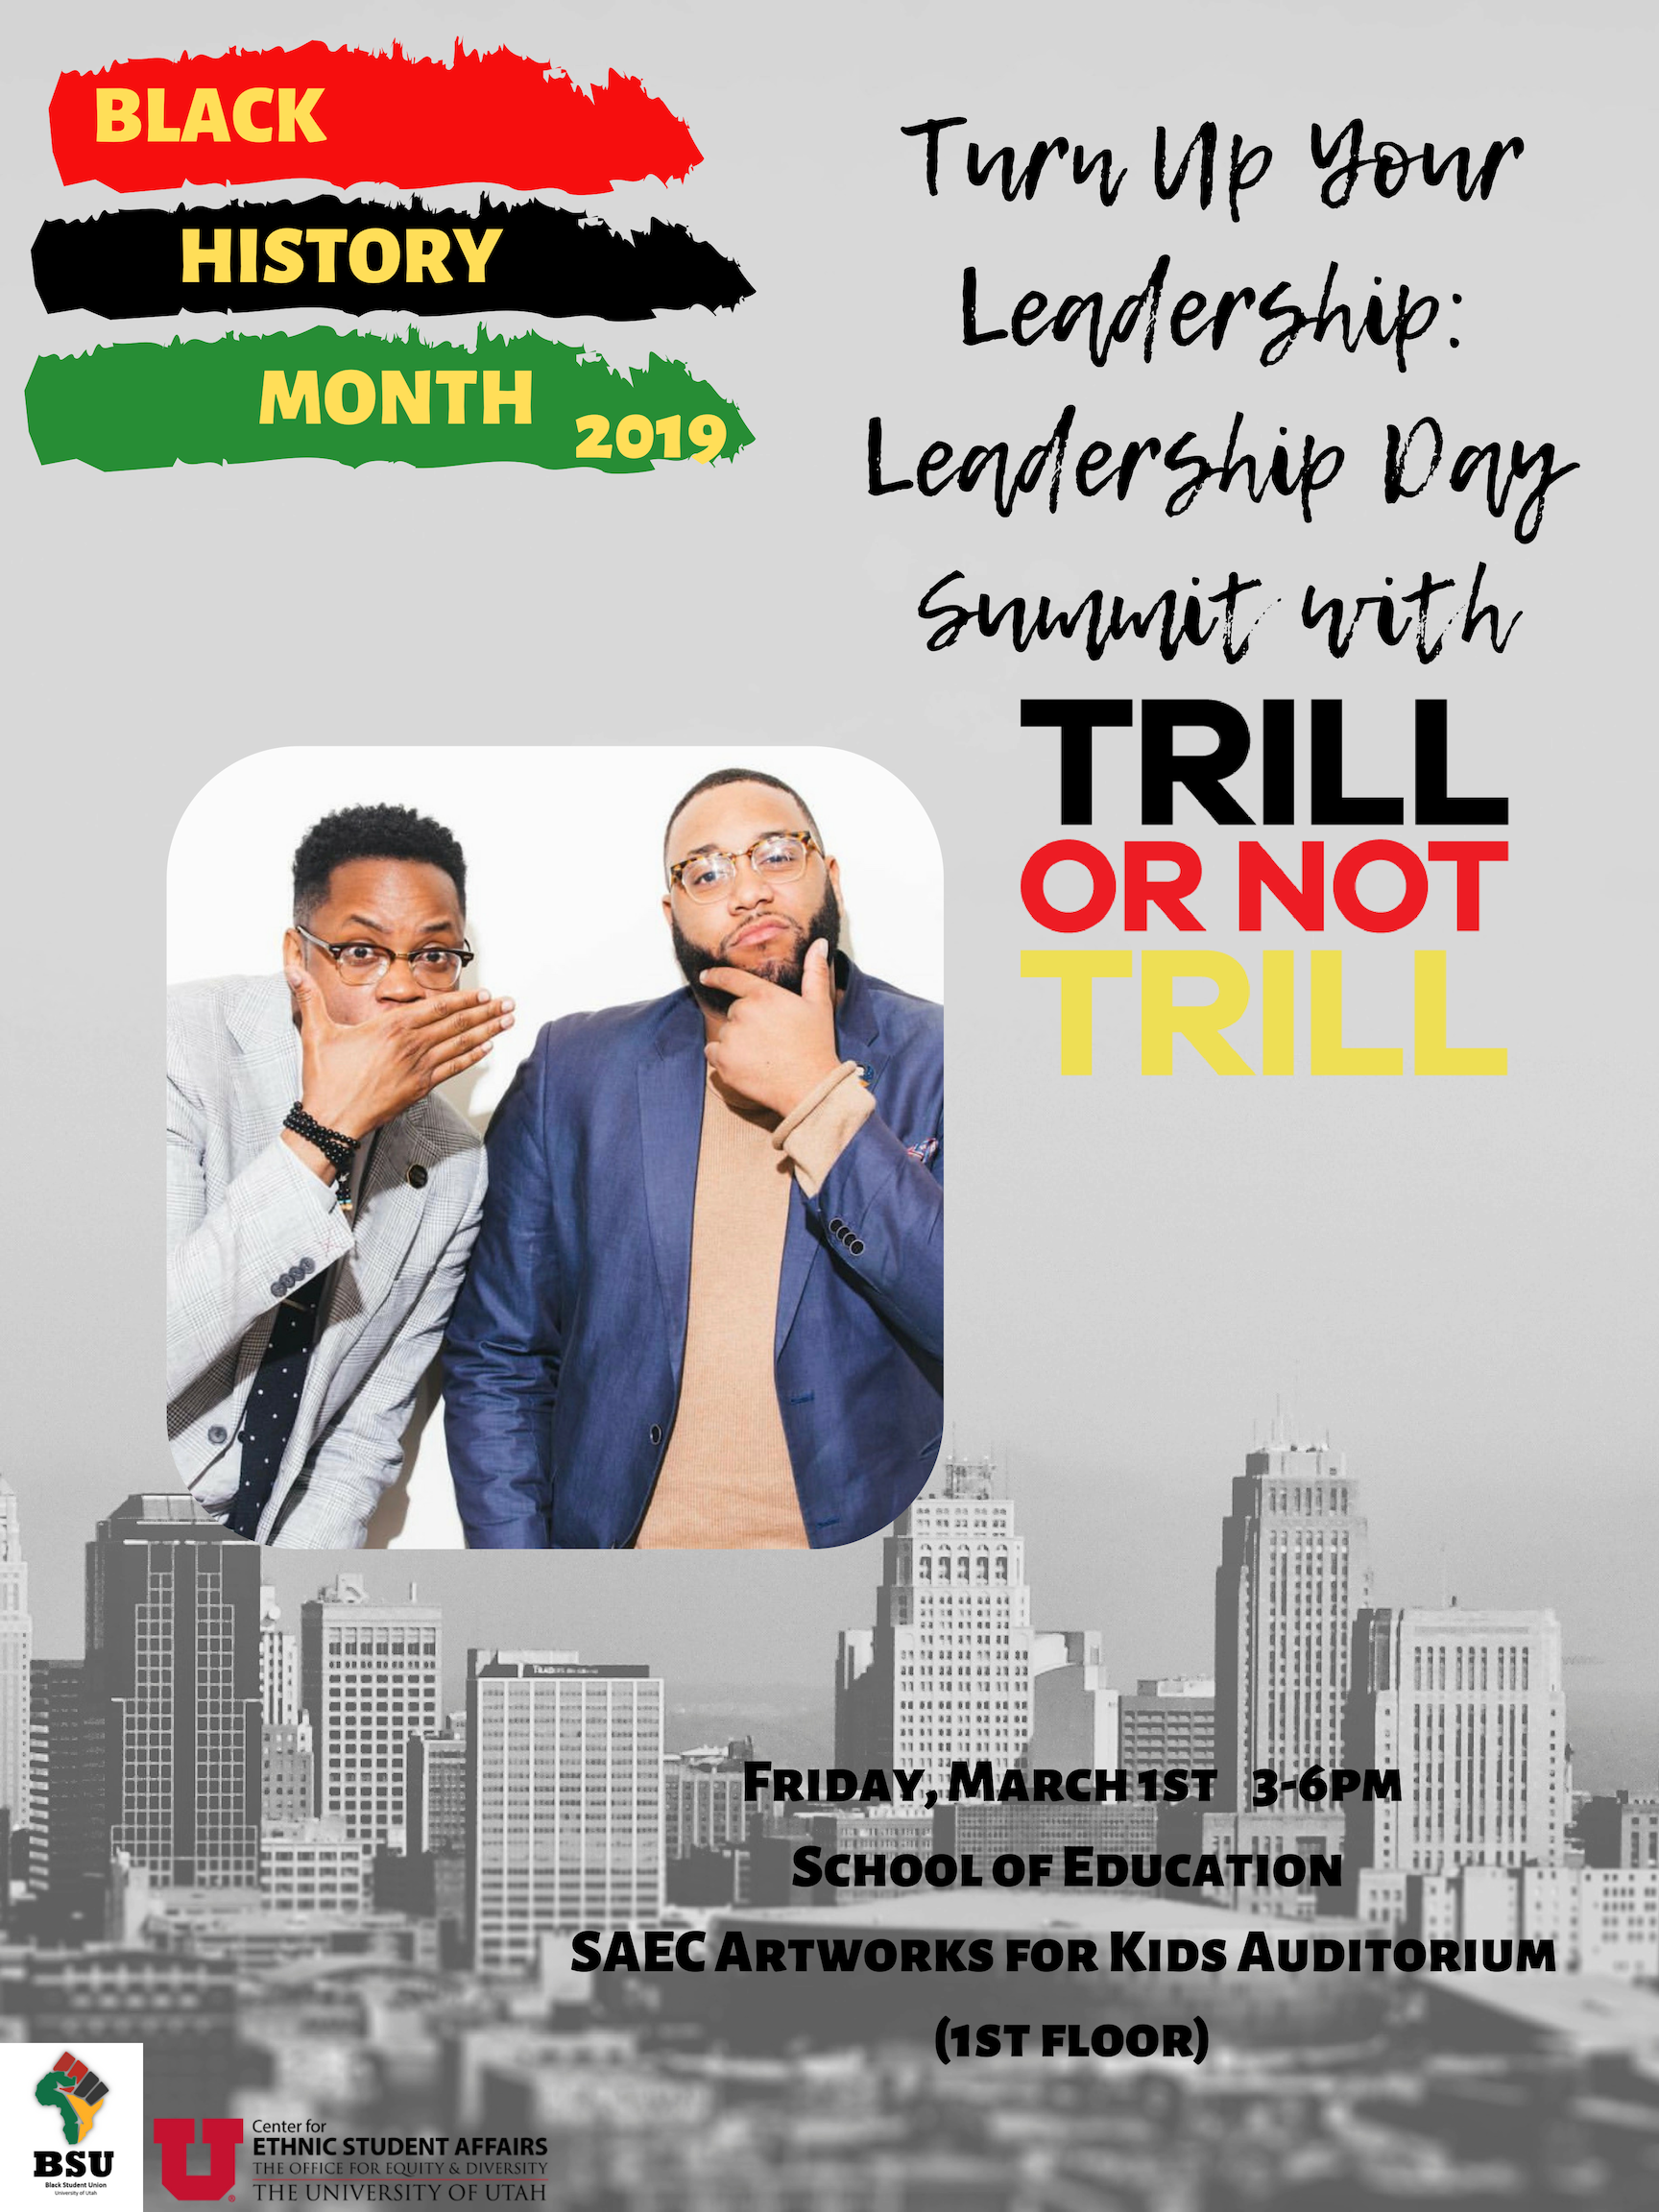 Turn Up Your Leadership Day Summit with Trill or Not Trill